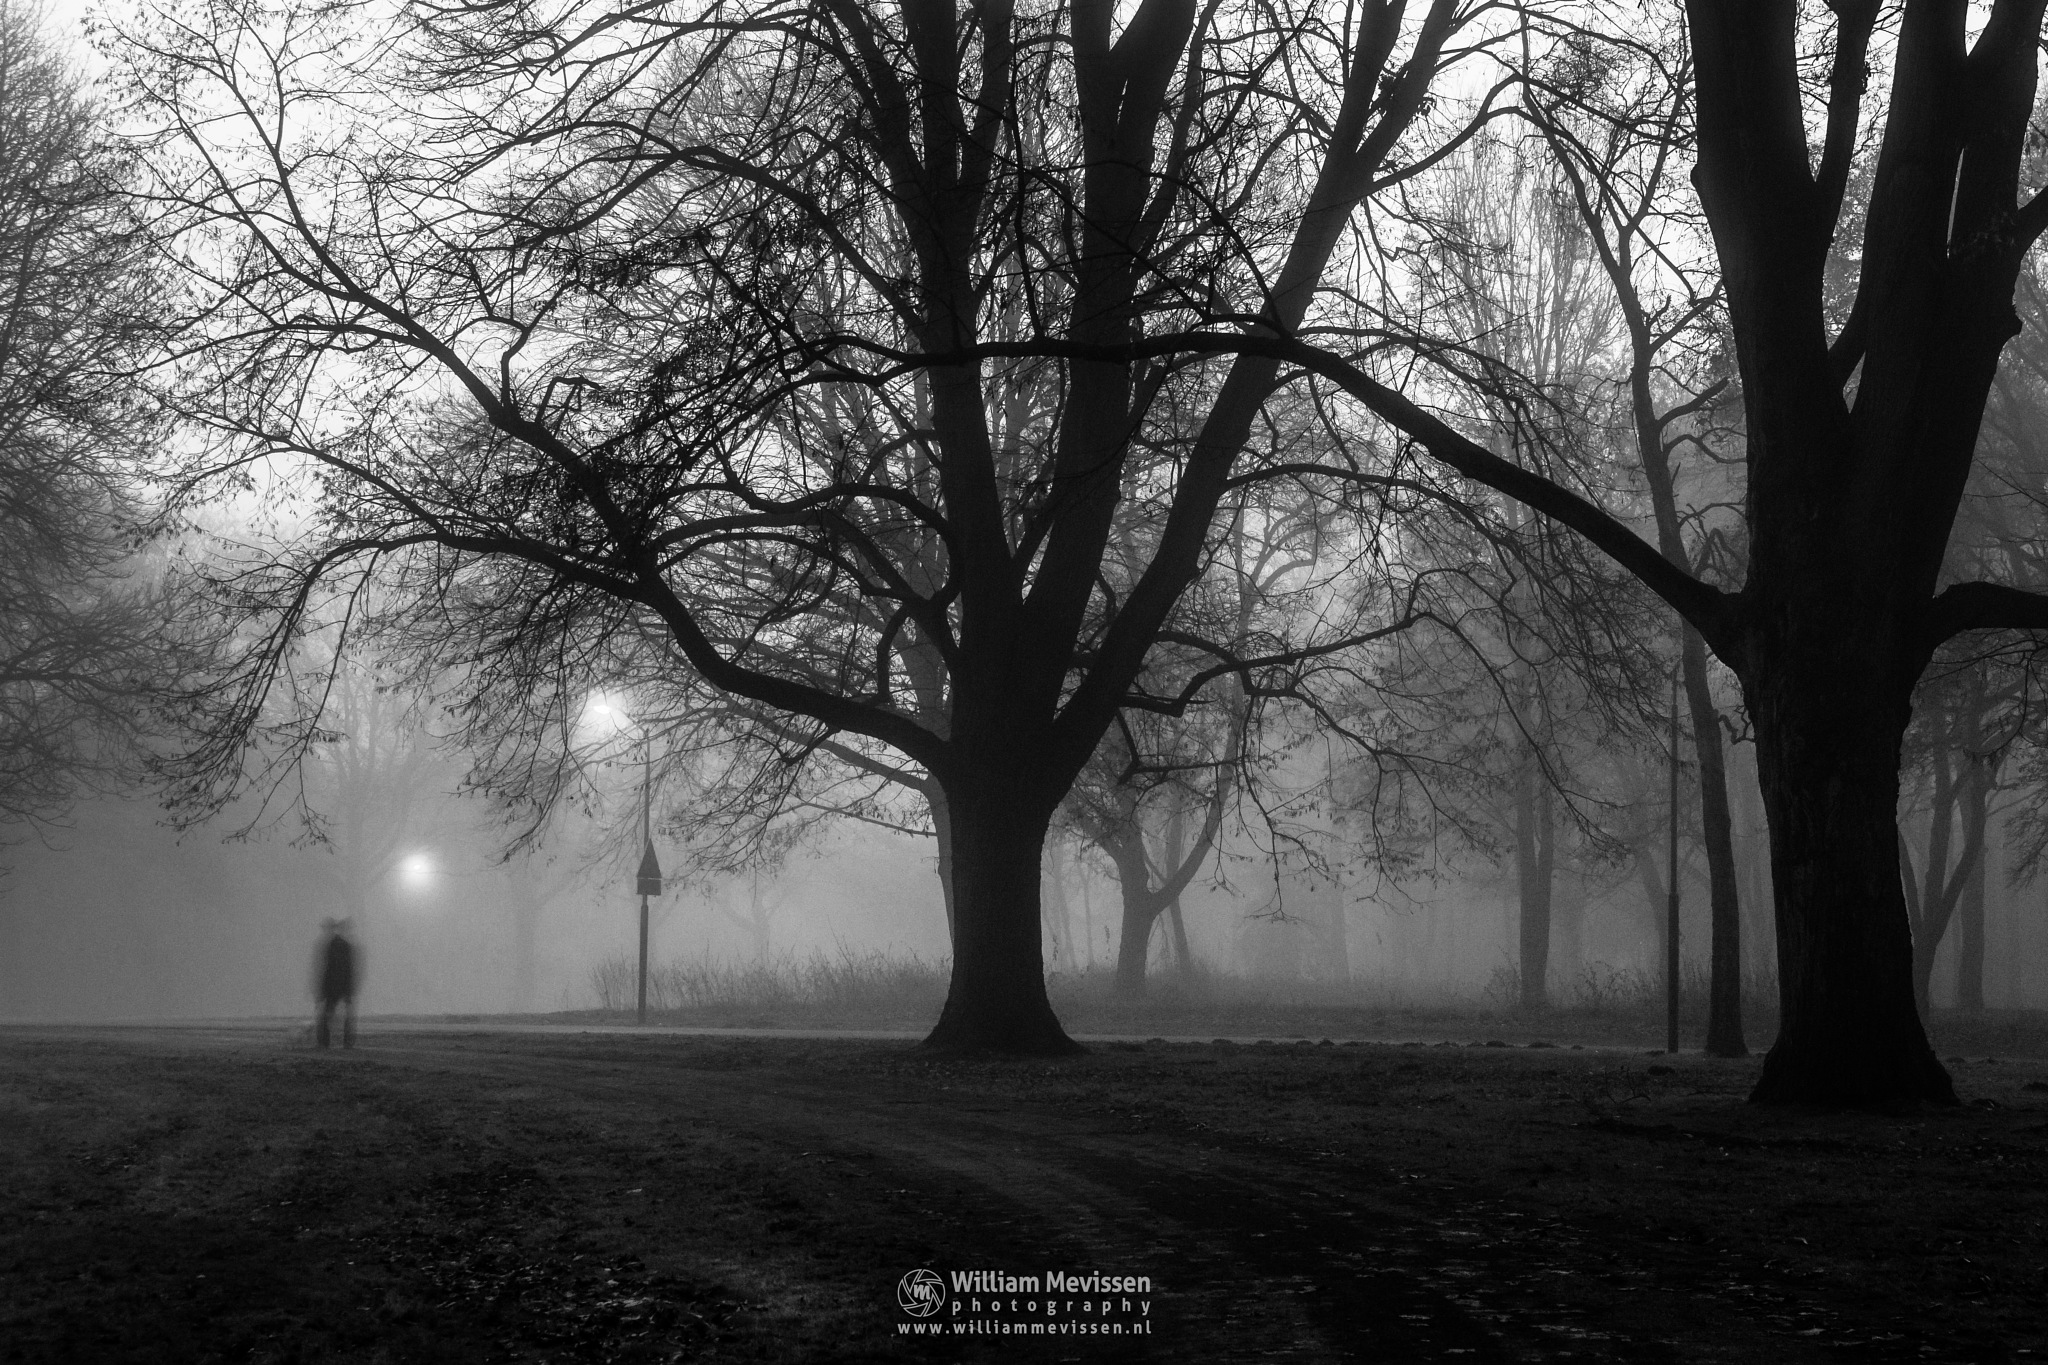 Mysterious Morning by William Mevissen